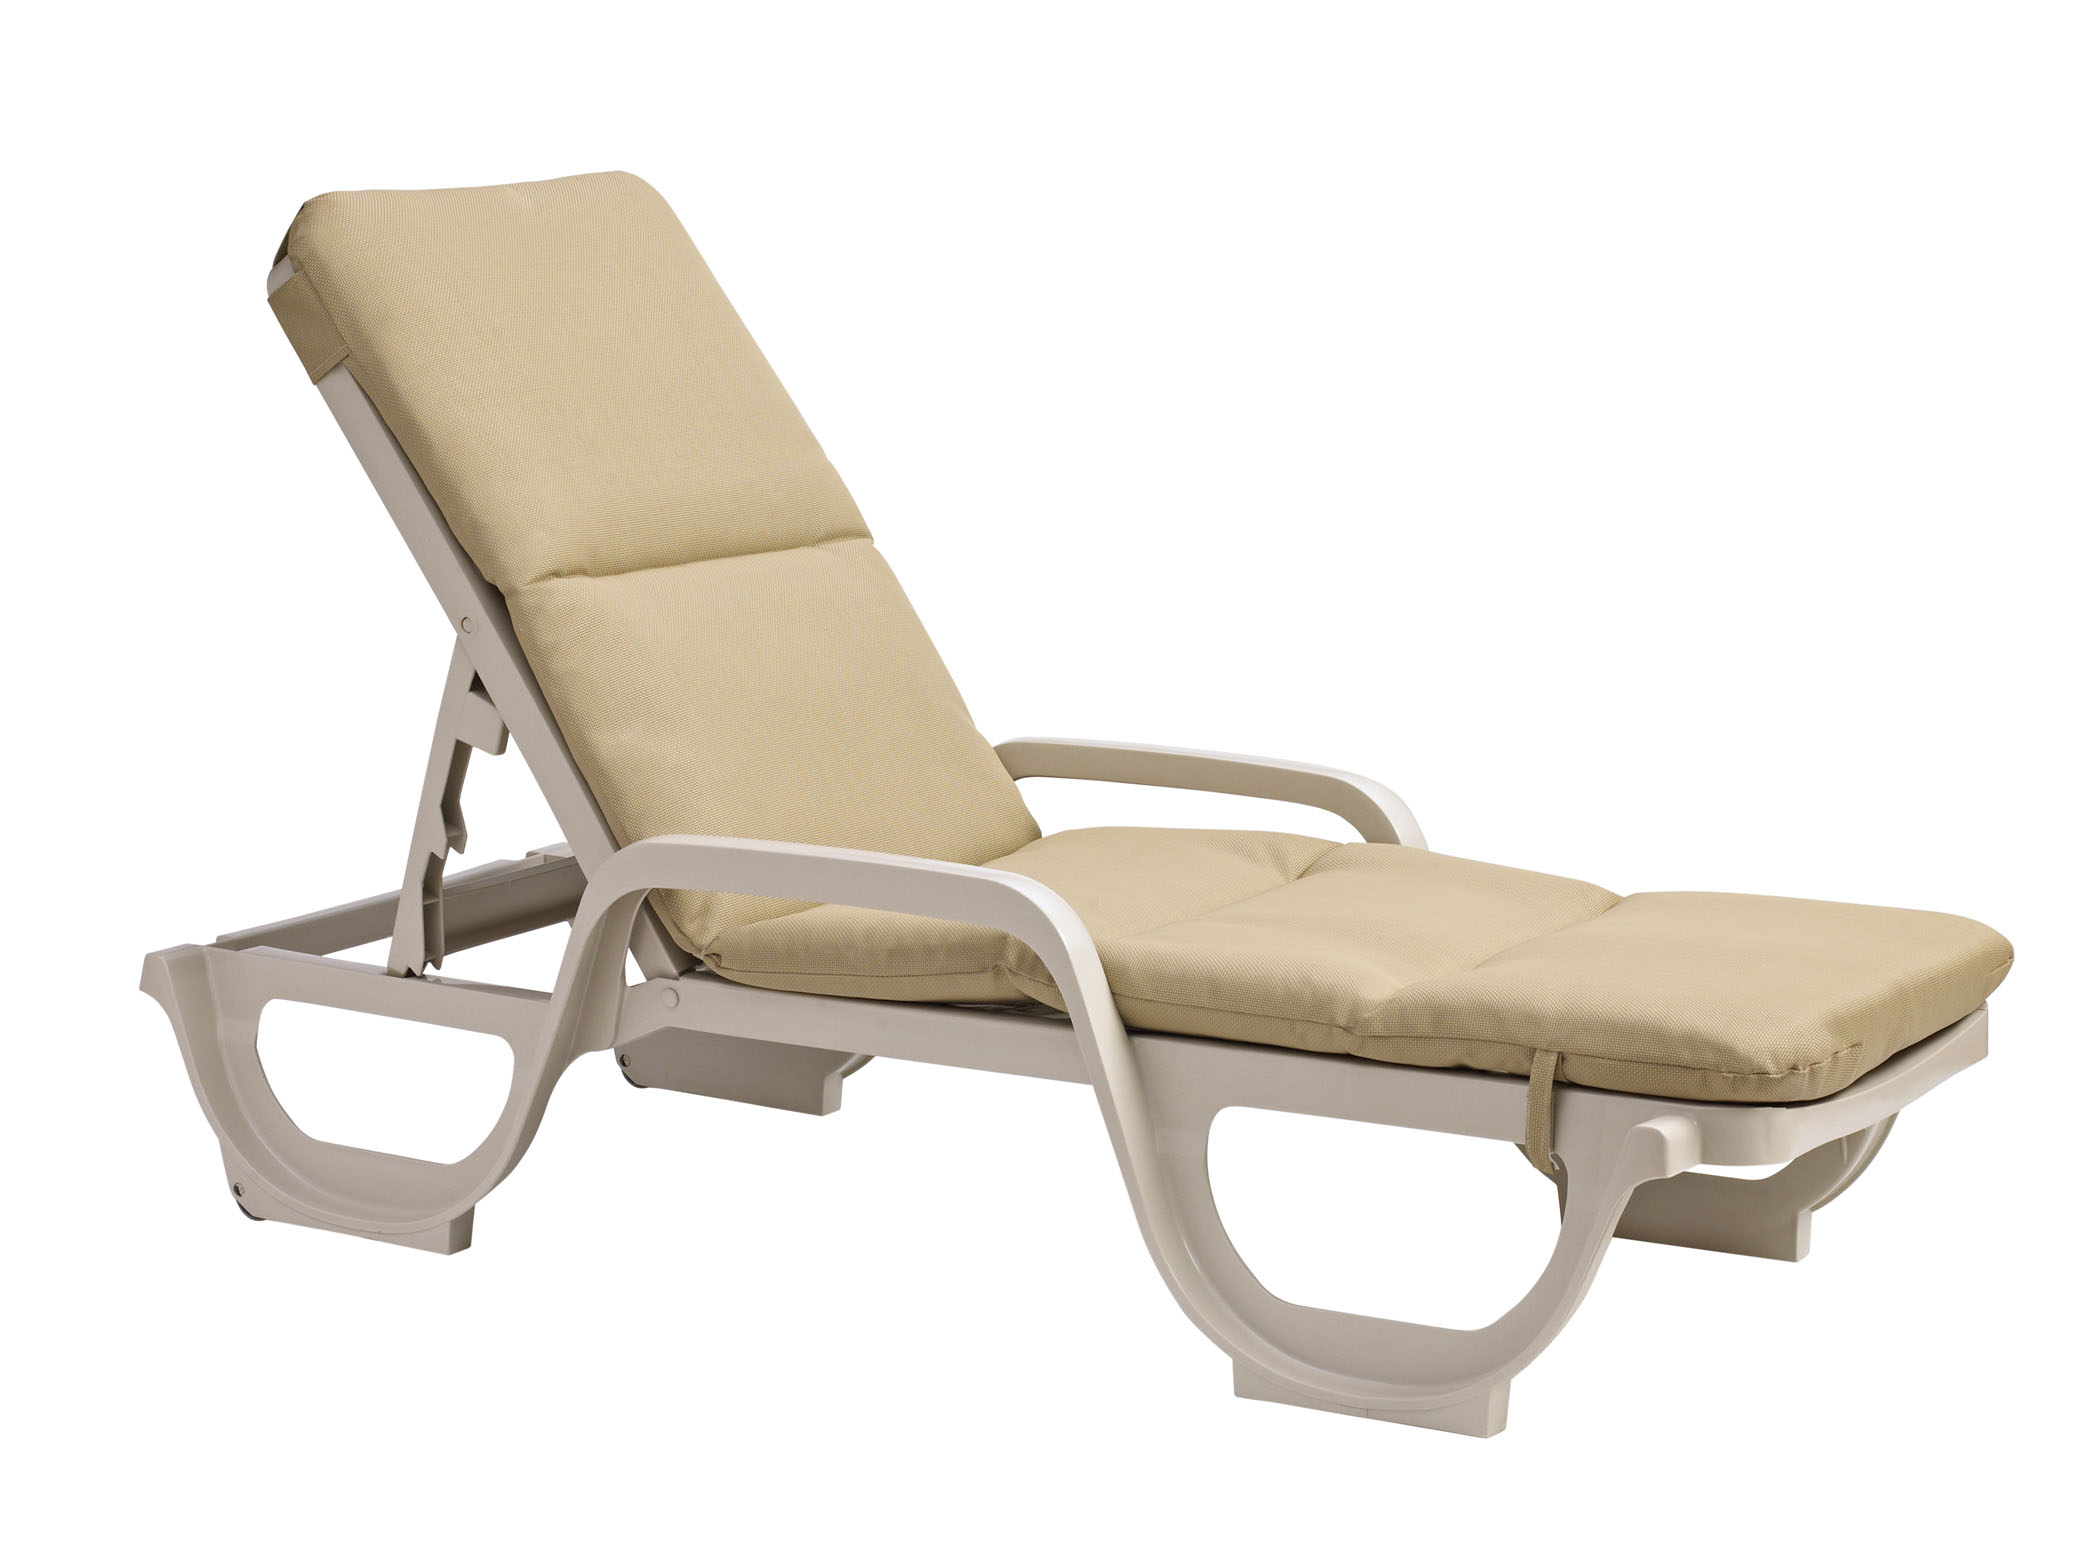 Grosfillex Contract Chaise Lounge Chair Cushion With Hood